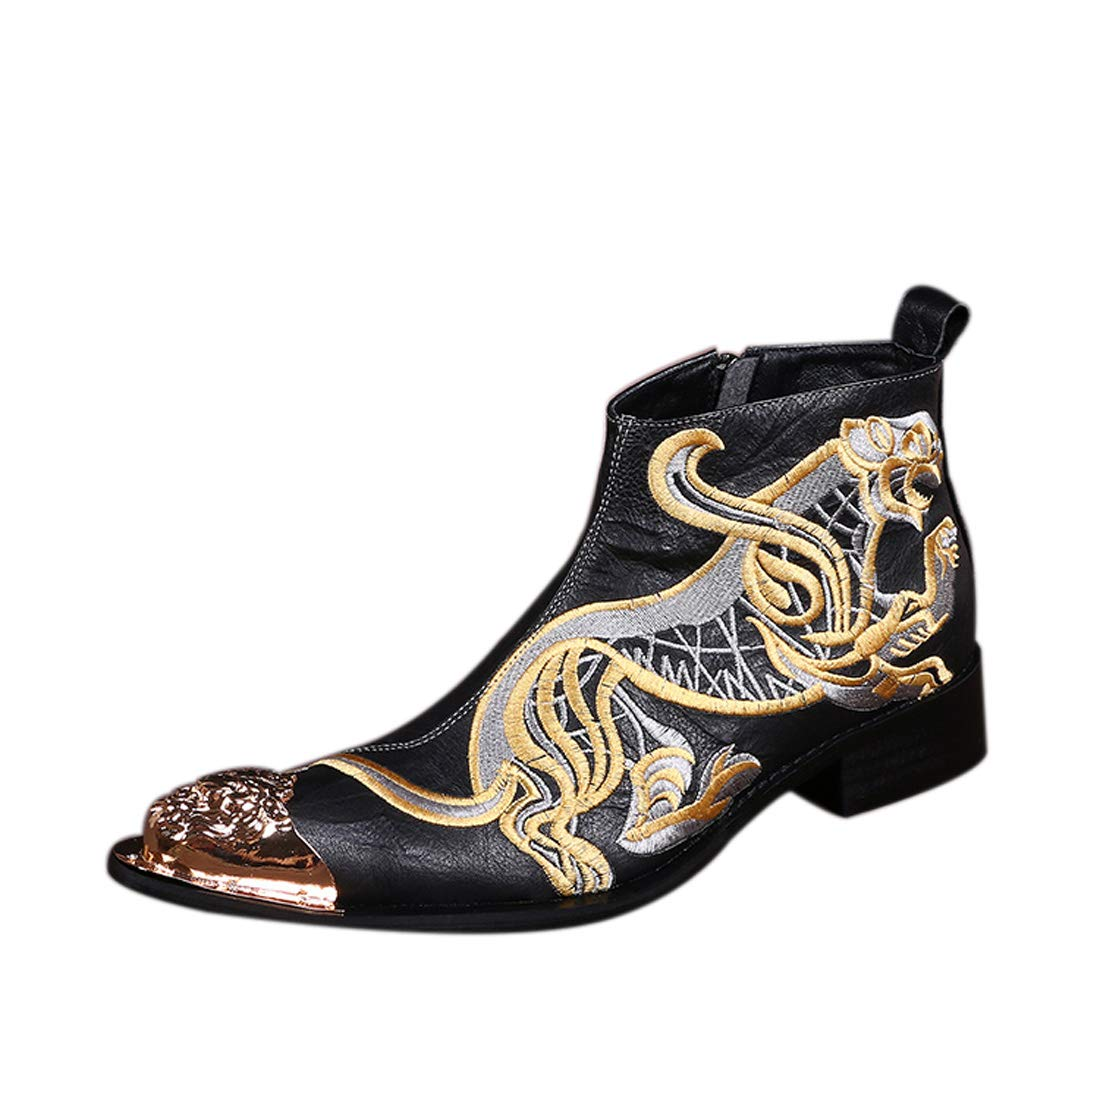 DANDANJIE Mens Fashion Boots Leather Fall Winter Motorcycle Booties Ankle Boots Wedding Shoes